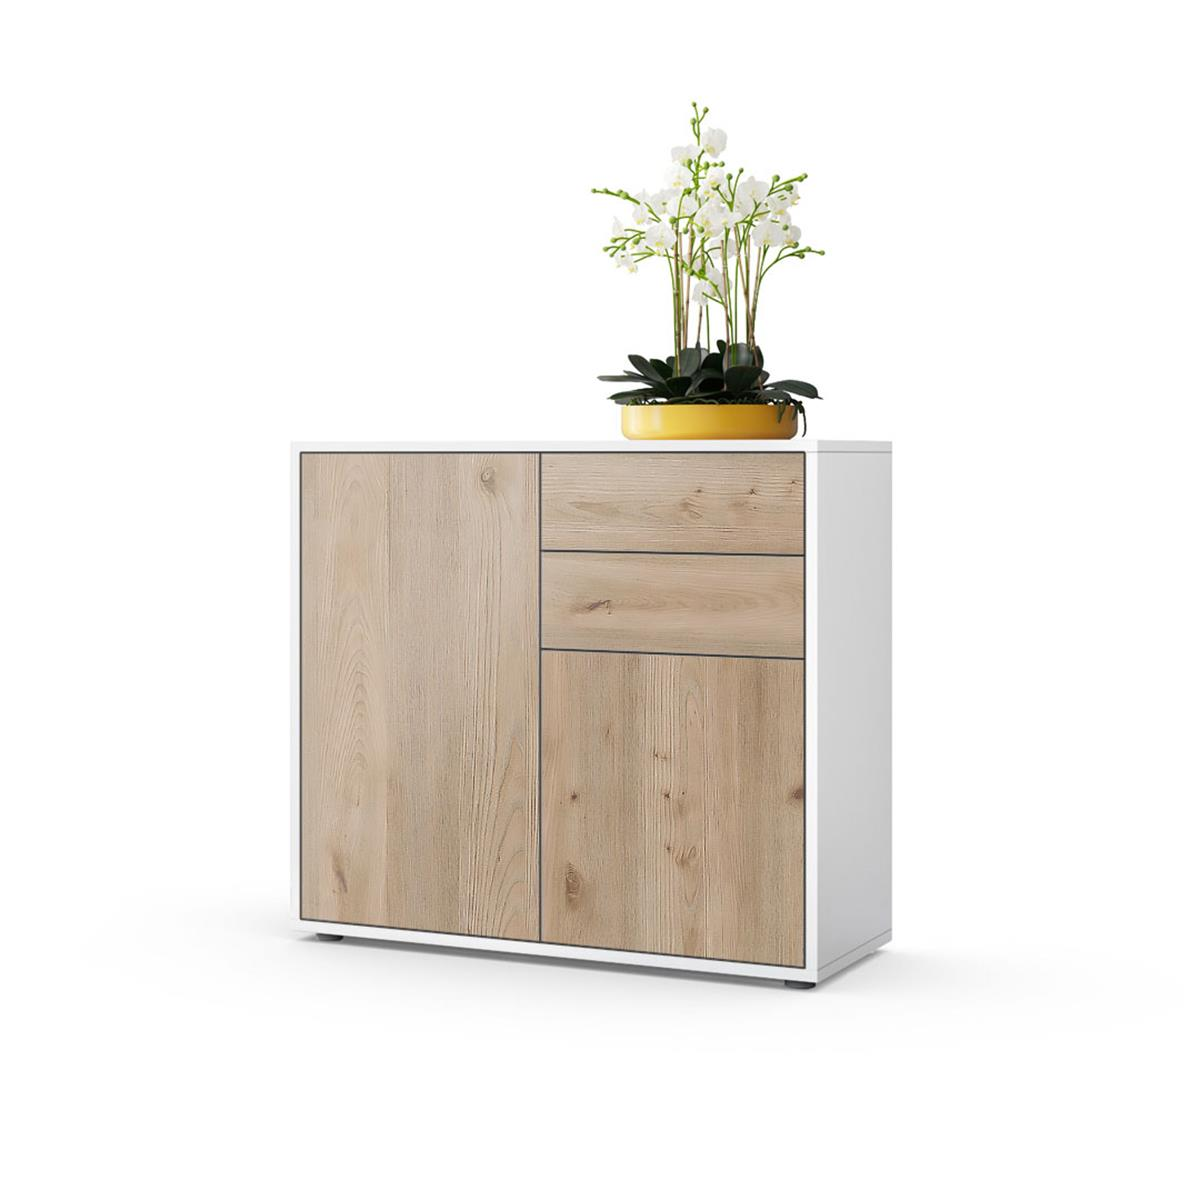 flur kommode interesting kommode buche cm sideboard anrichte flur diele schrank wohnzimmer with. Black Bedroom Furniture Sets. Home Design Ideas